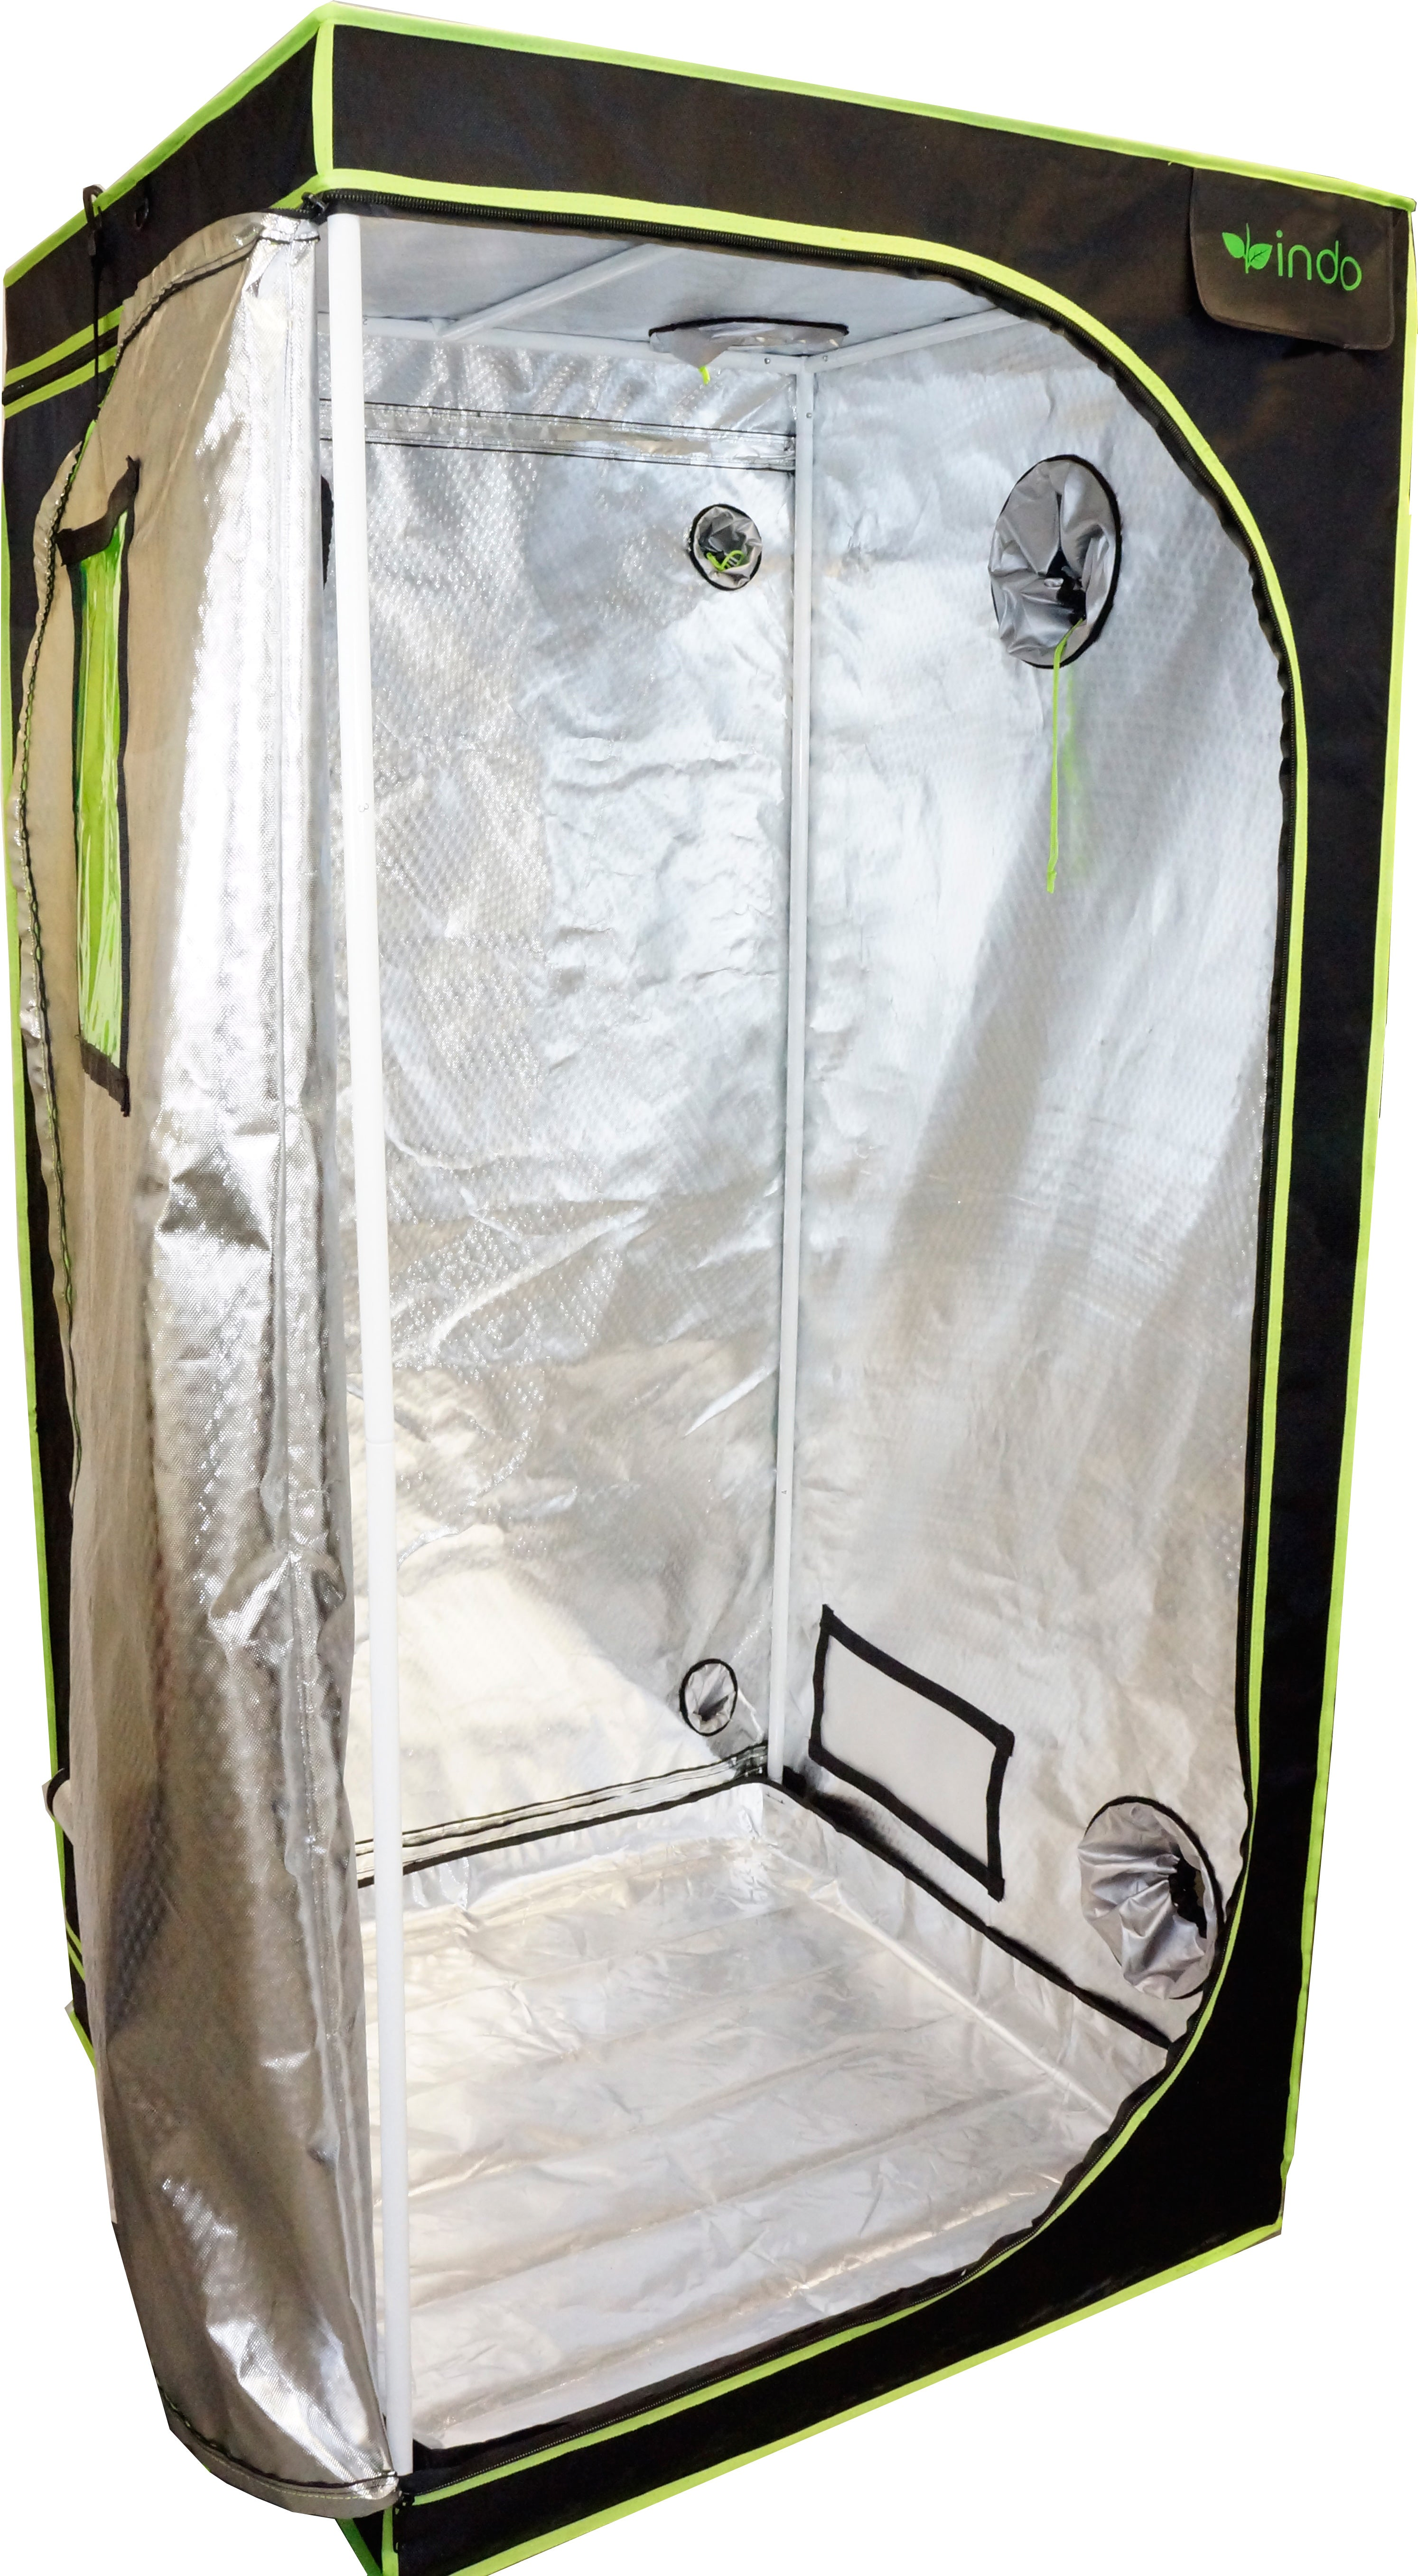 "Grow Tent - 60"" x 60"" - 1680D Oxford Mylar Fabric - 19mm Steel Frame - Highly Reflective Inside - Heavy Duty Zippers - Observation Window"